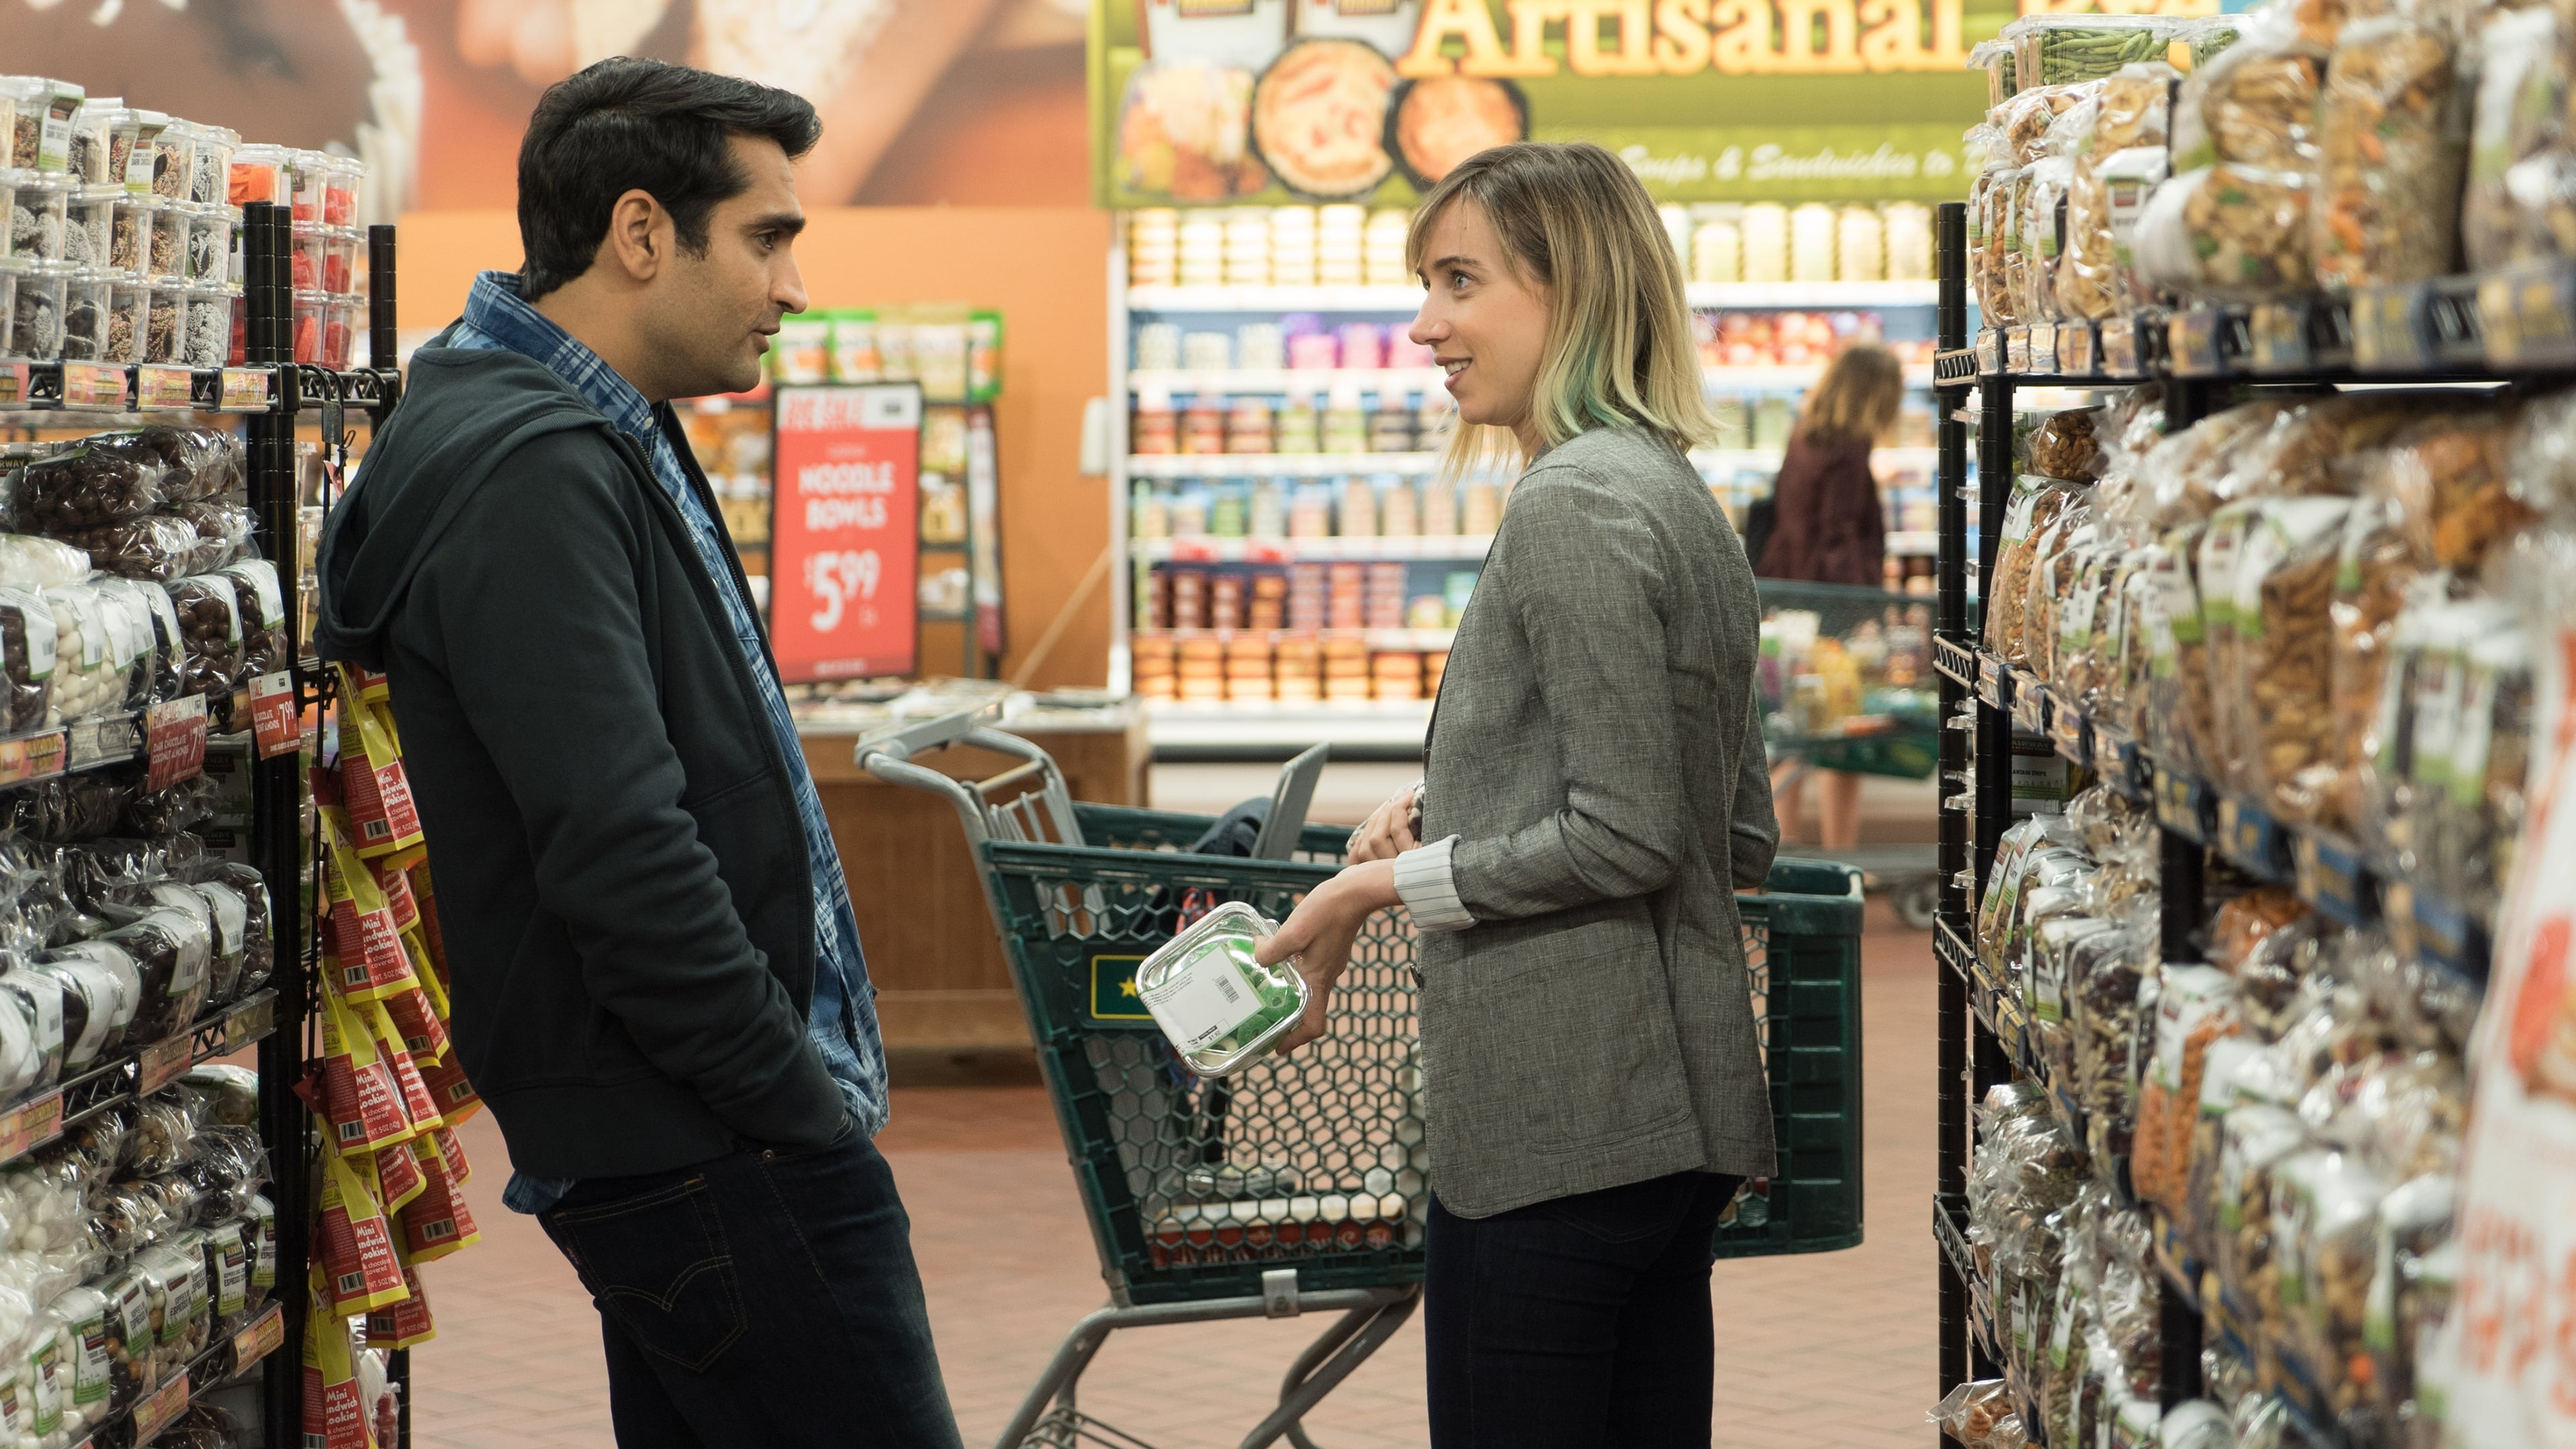 Filmszene aus The Big Sick